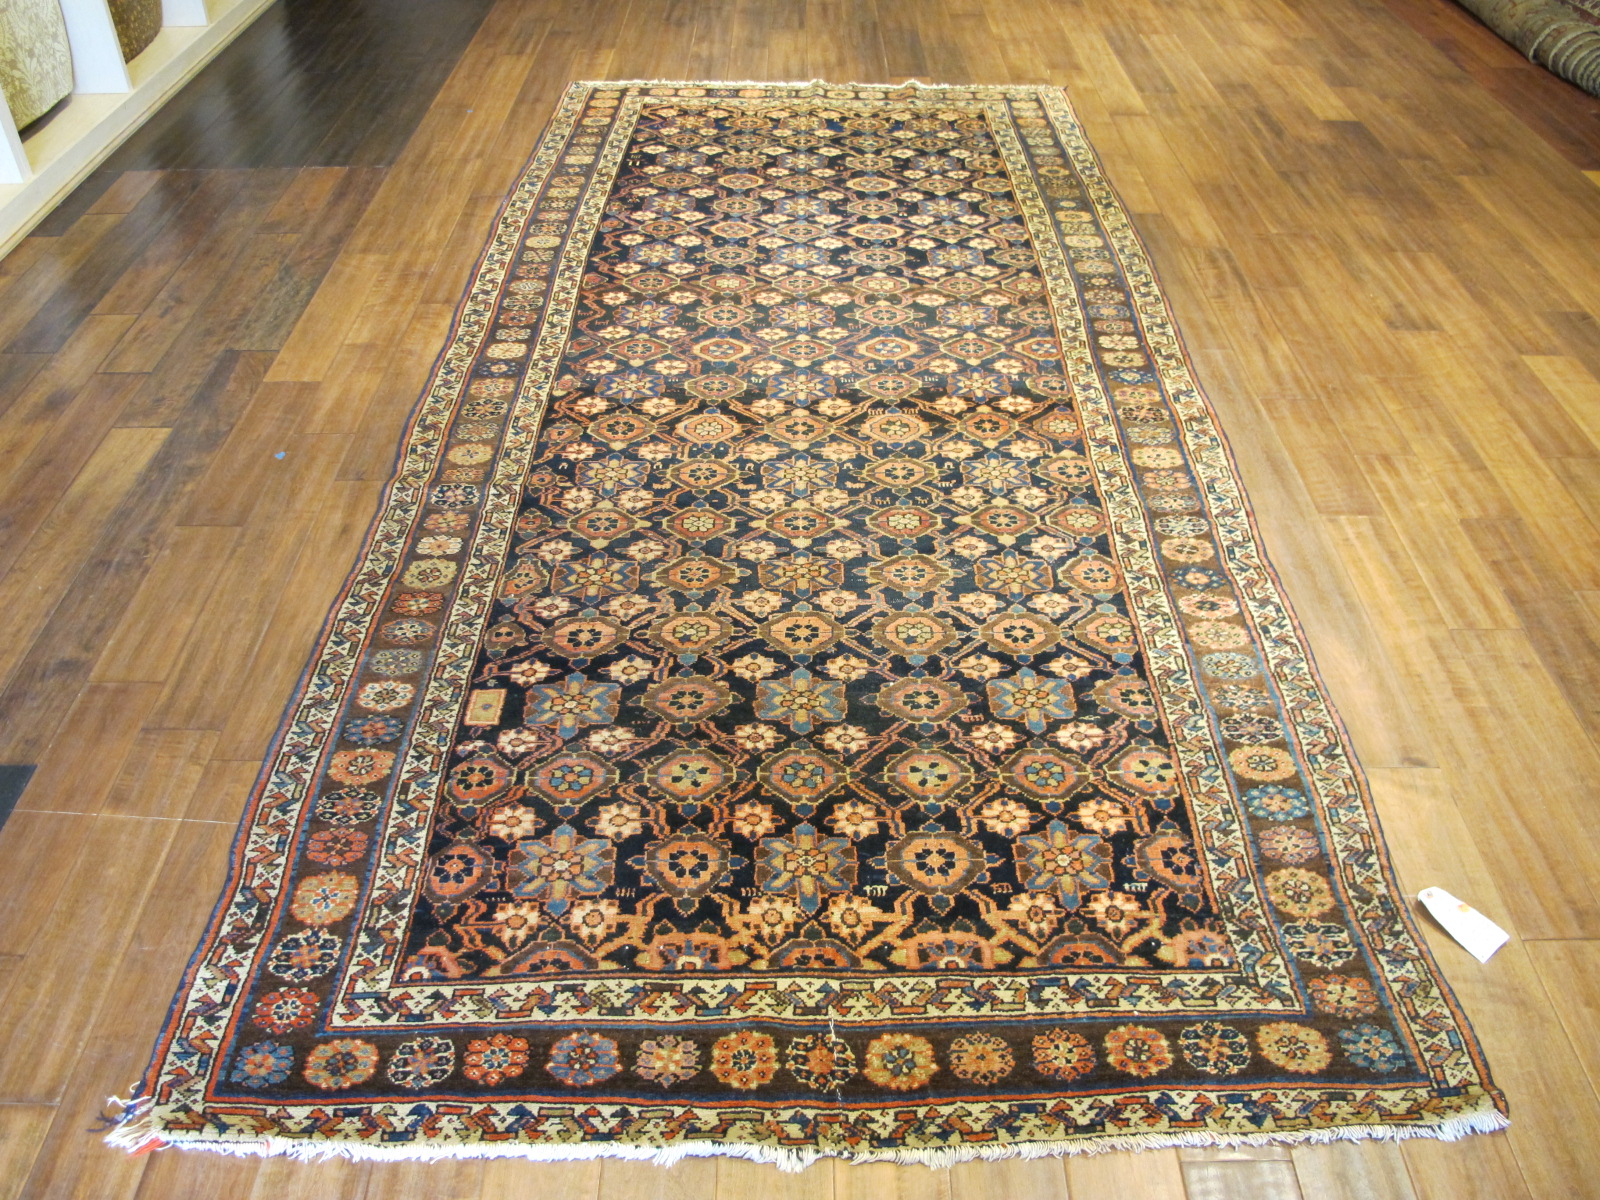 22148 Antique Persian Veramin gallery rug 5,5 x 11,2 (2)